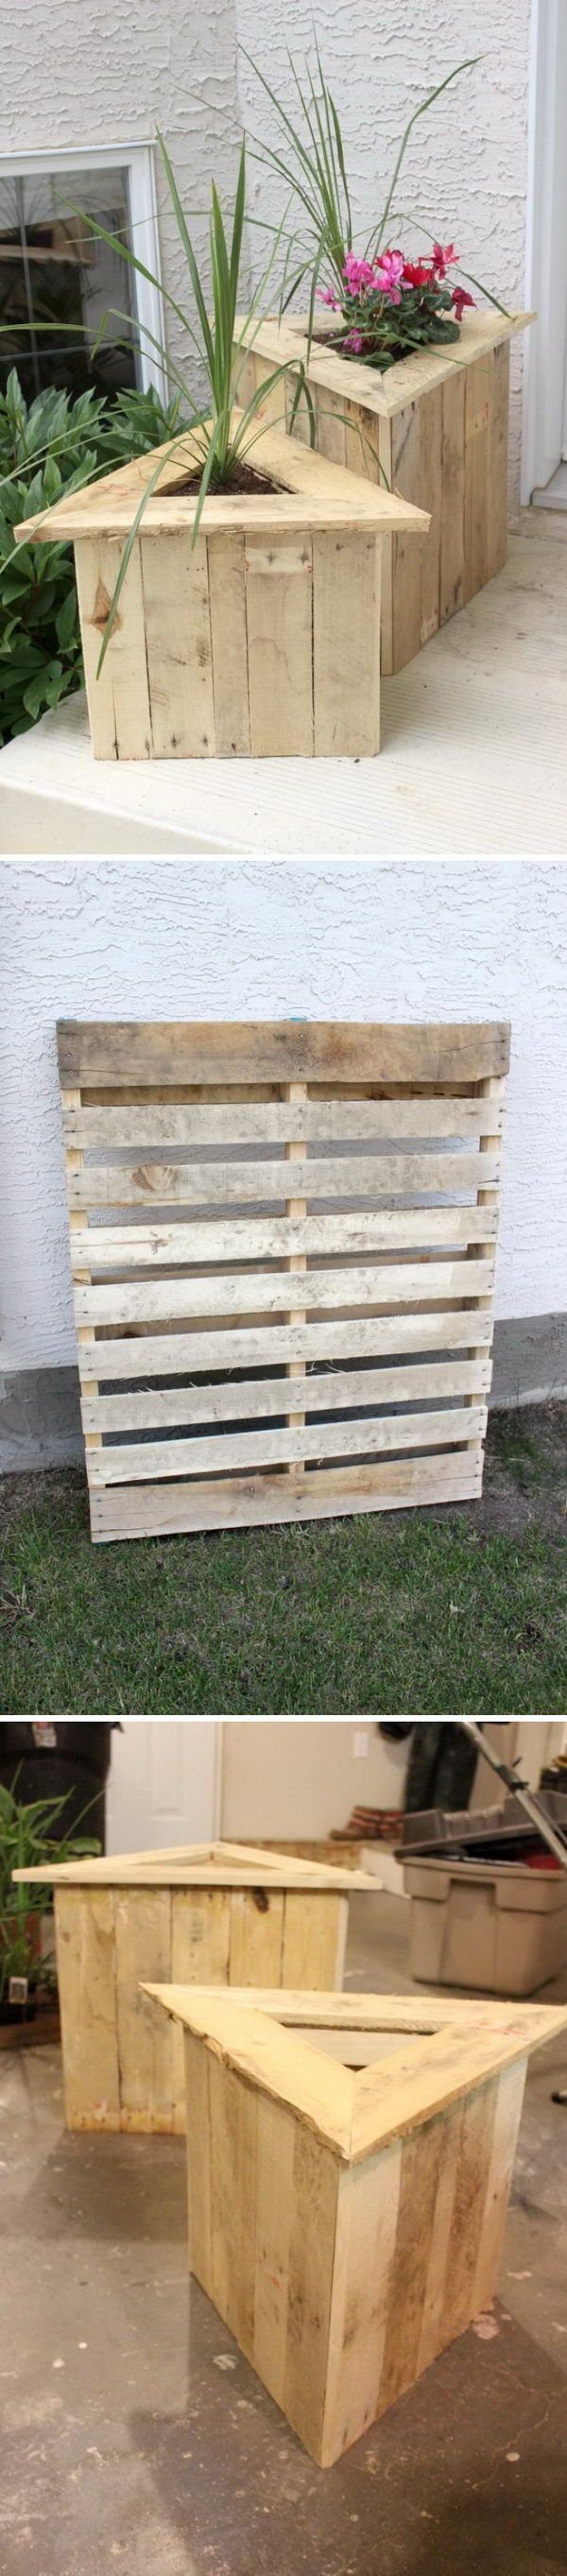 17 best ideas about wood pallet planters on pinterest for Flower beds out of pallets